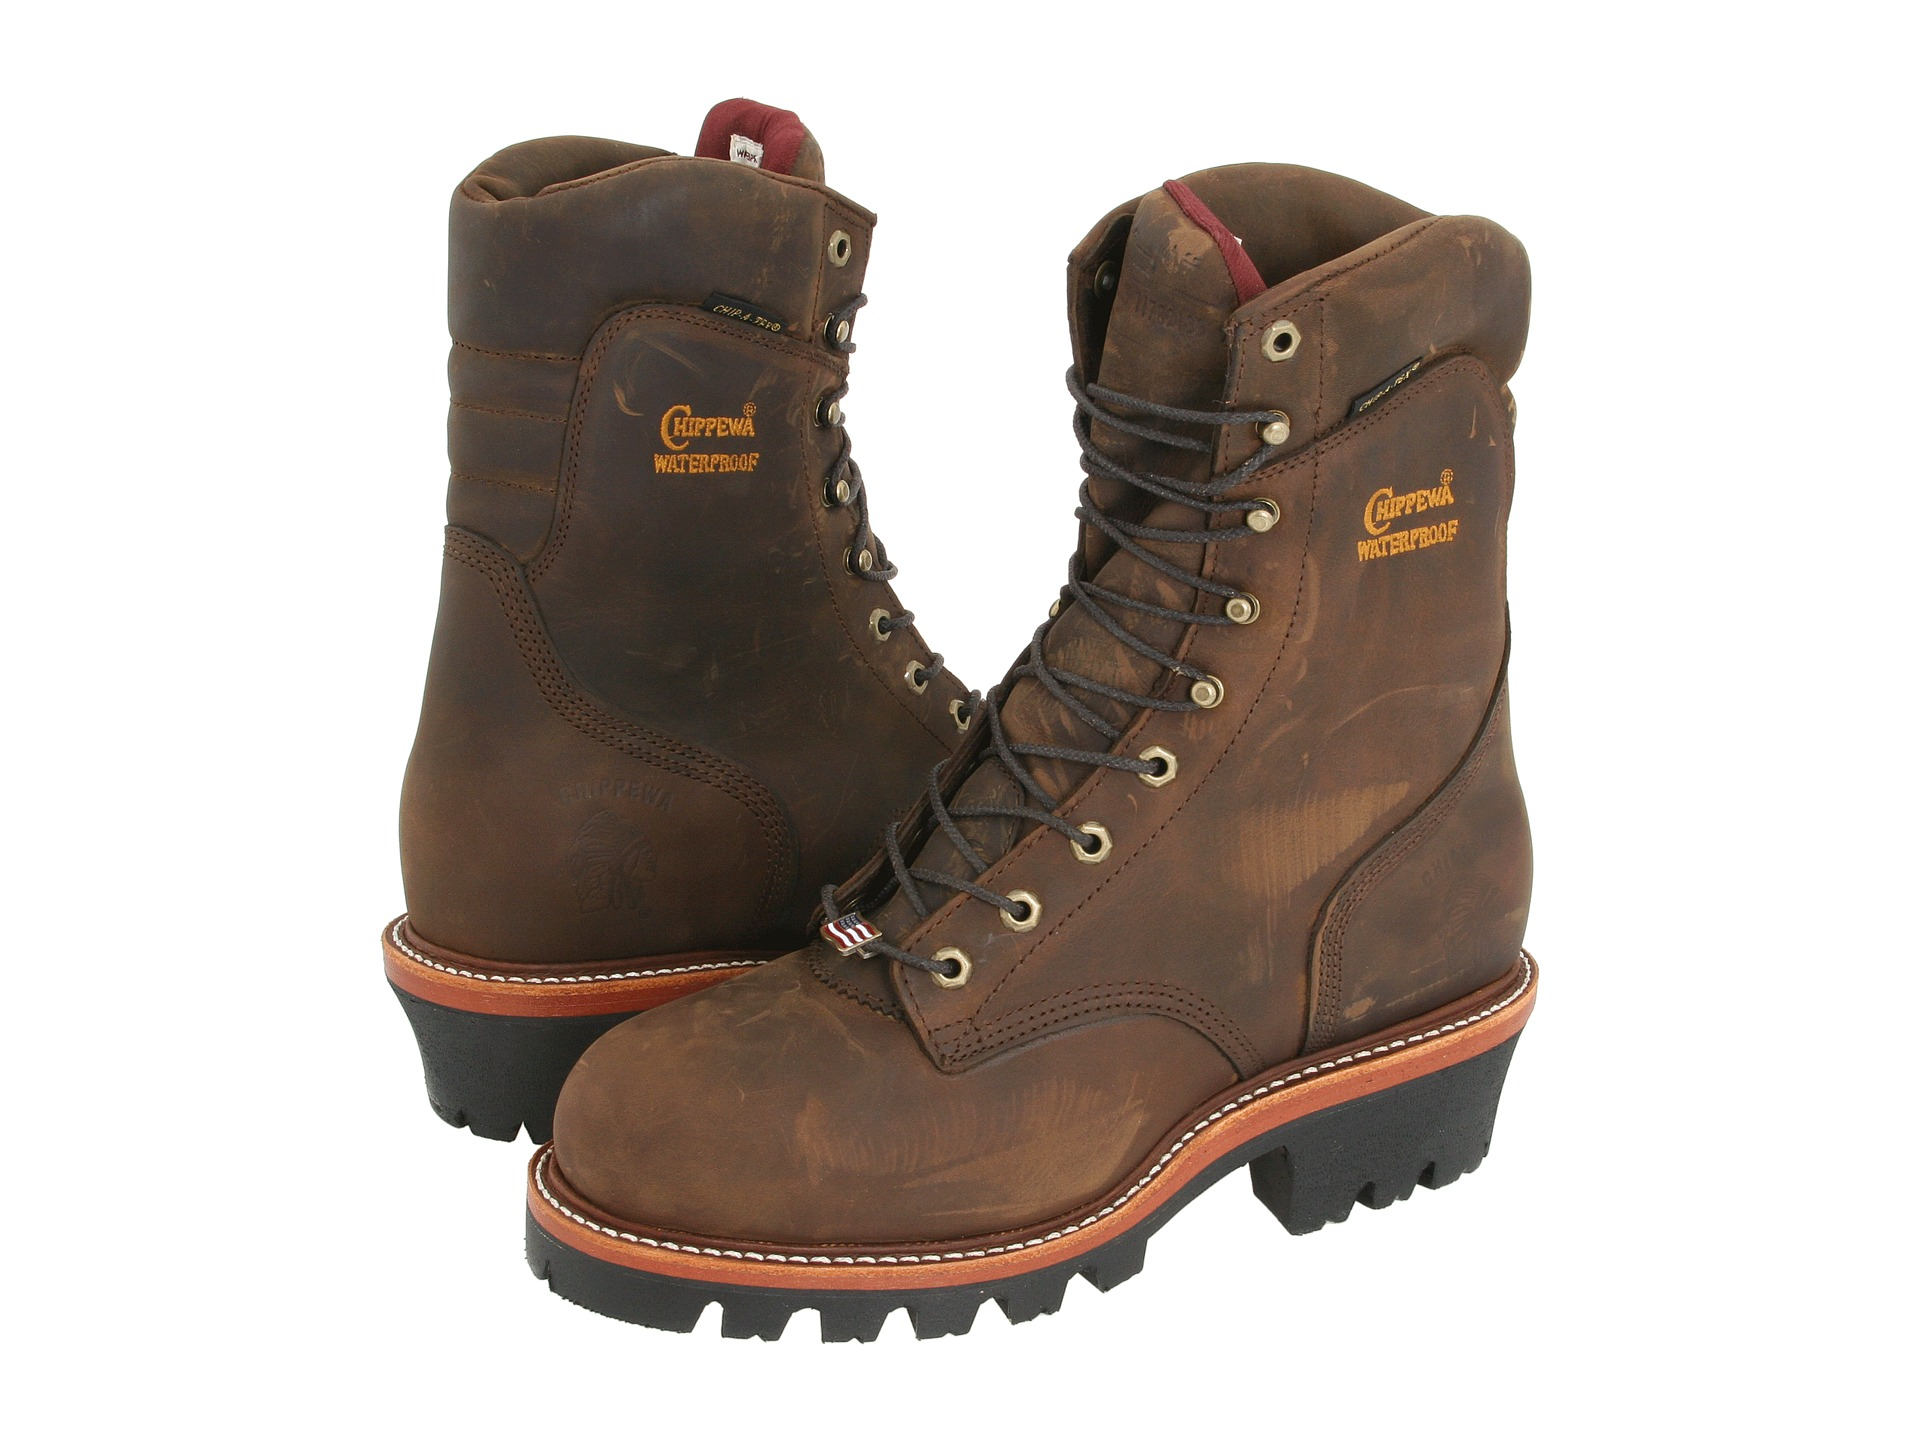 chippewa 9 quot waterproof insulated logger zappos